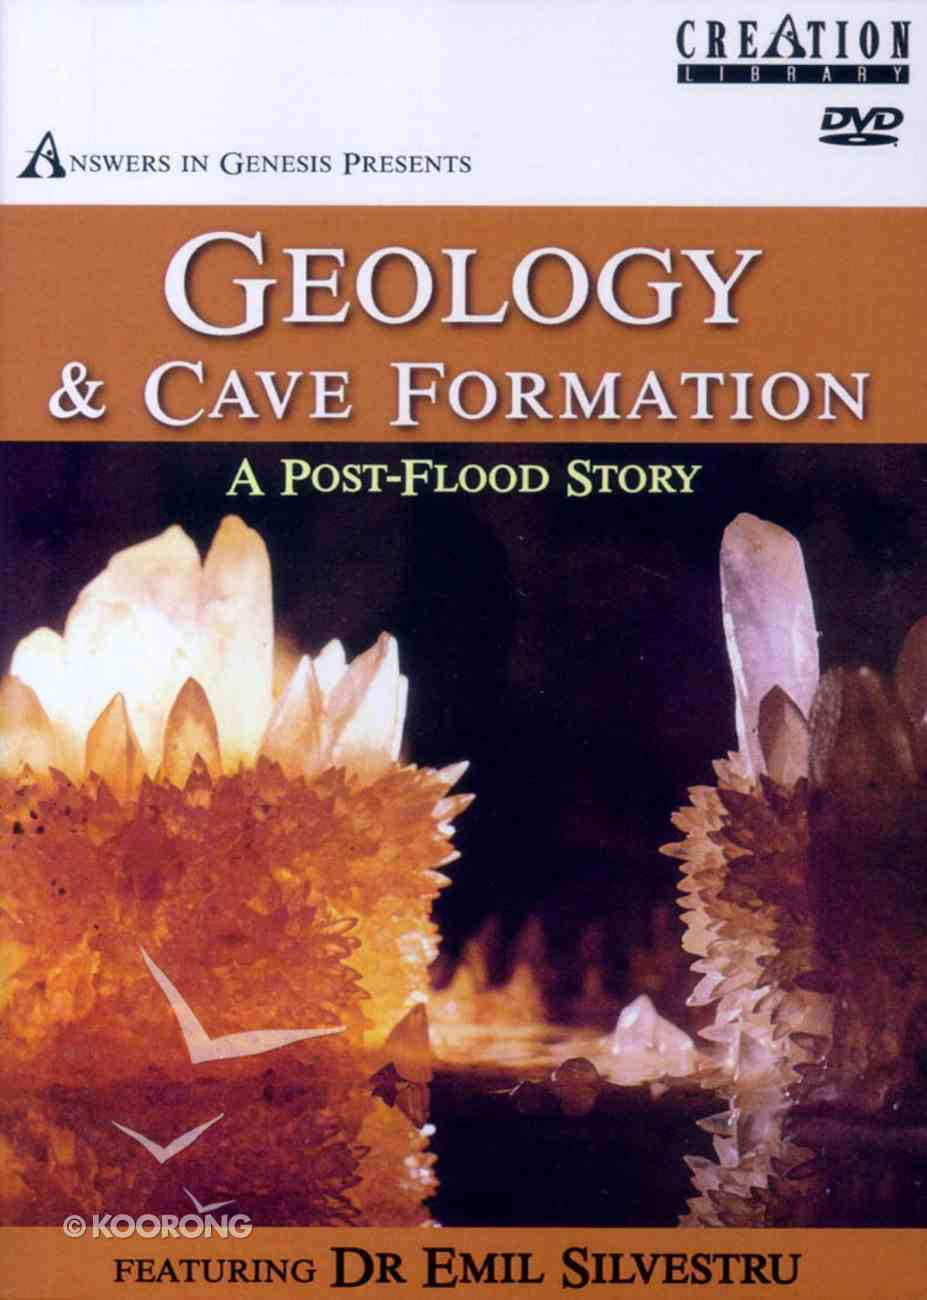 Geology & Cave Formations DVD